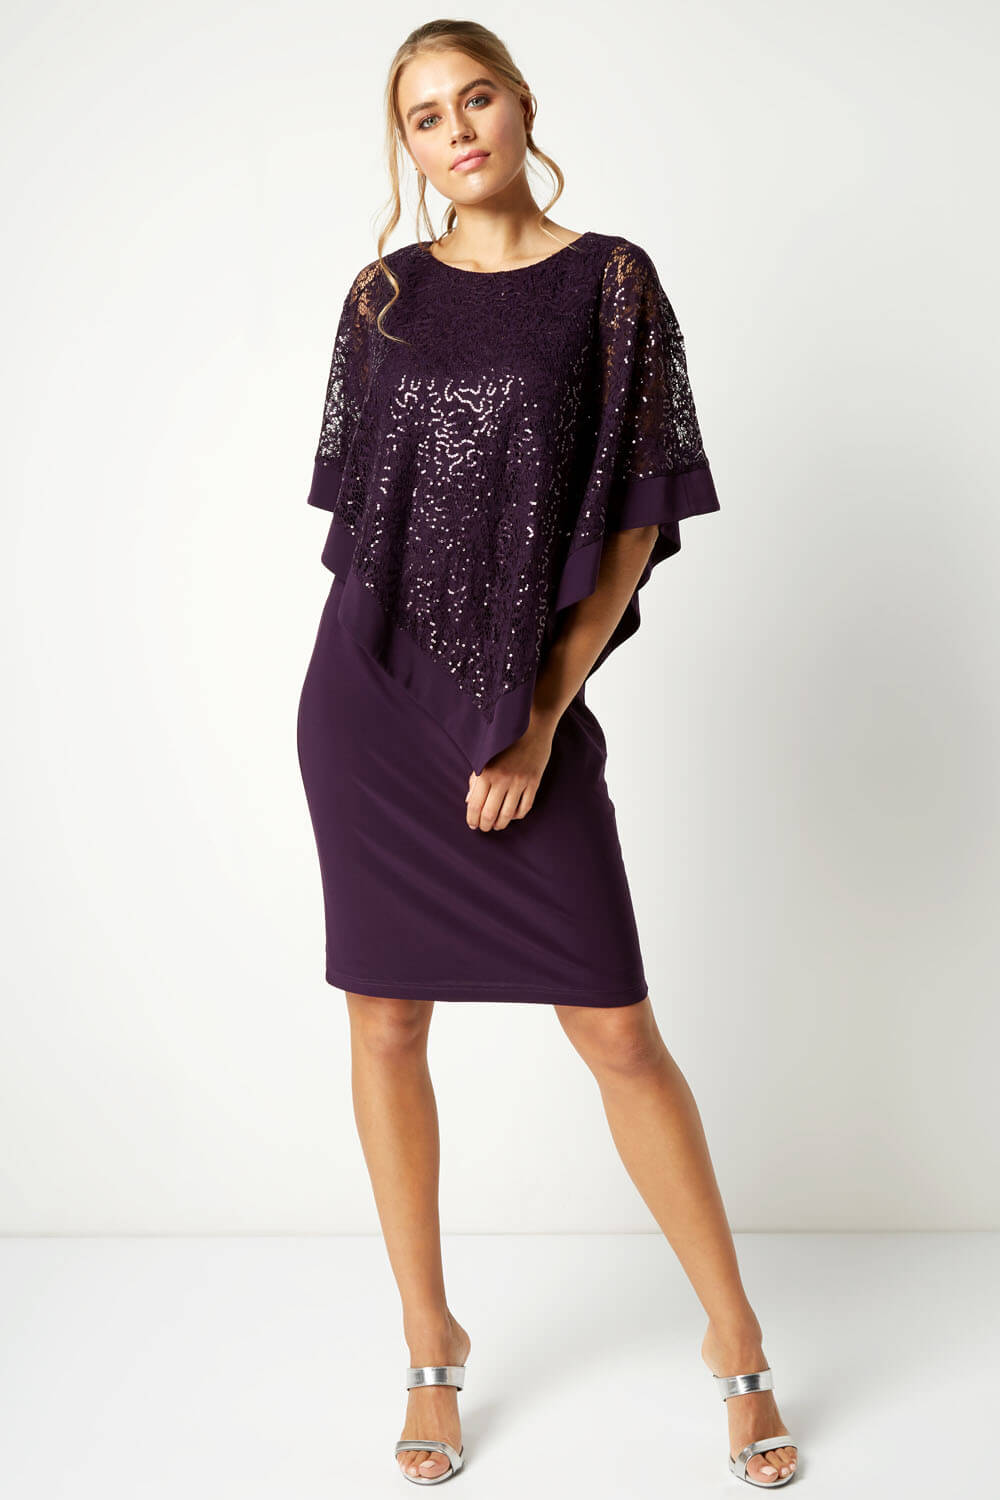 Roman-Originals-Women-039-s-Sequin-Lace-Boat-Neck-Overlay-Knee-Length-Dress thumbnail 20